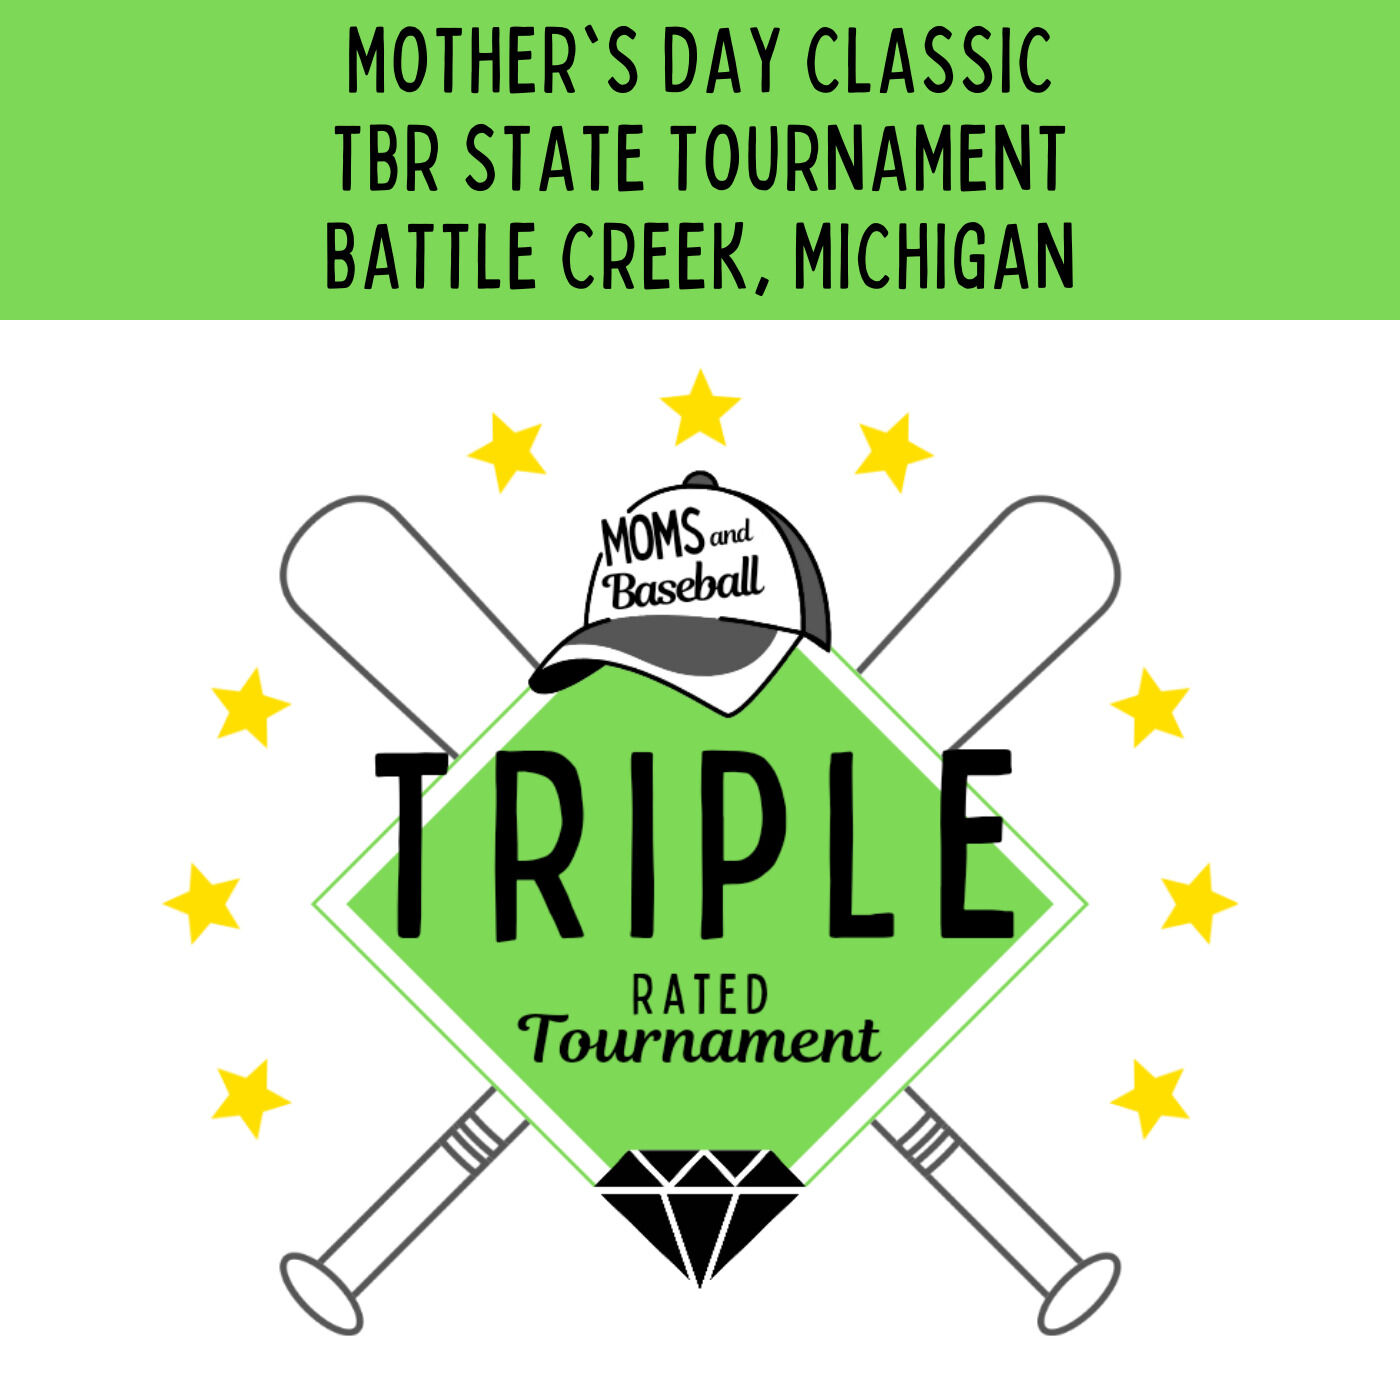 041: Mother's Day Classic TBR State Championship Review (Michigan)